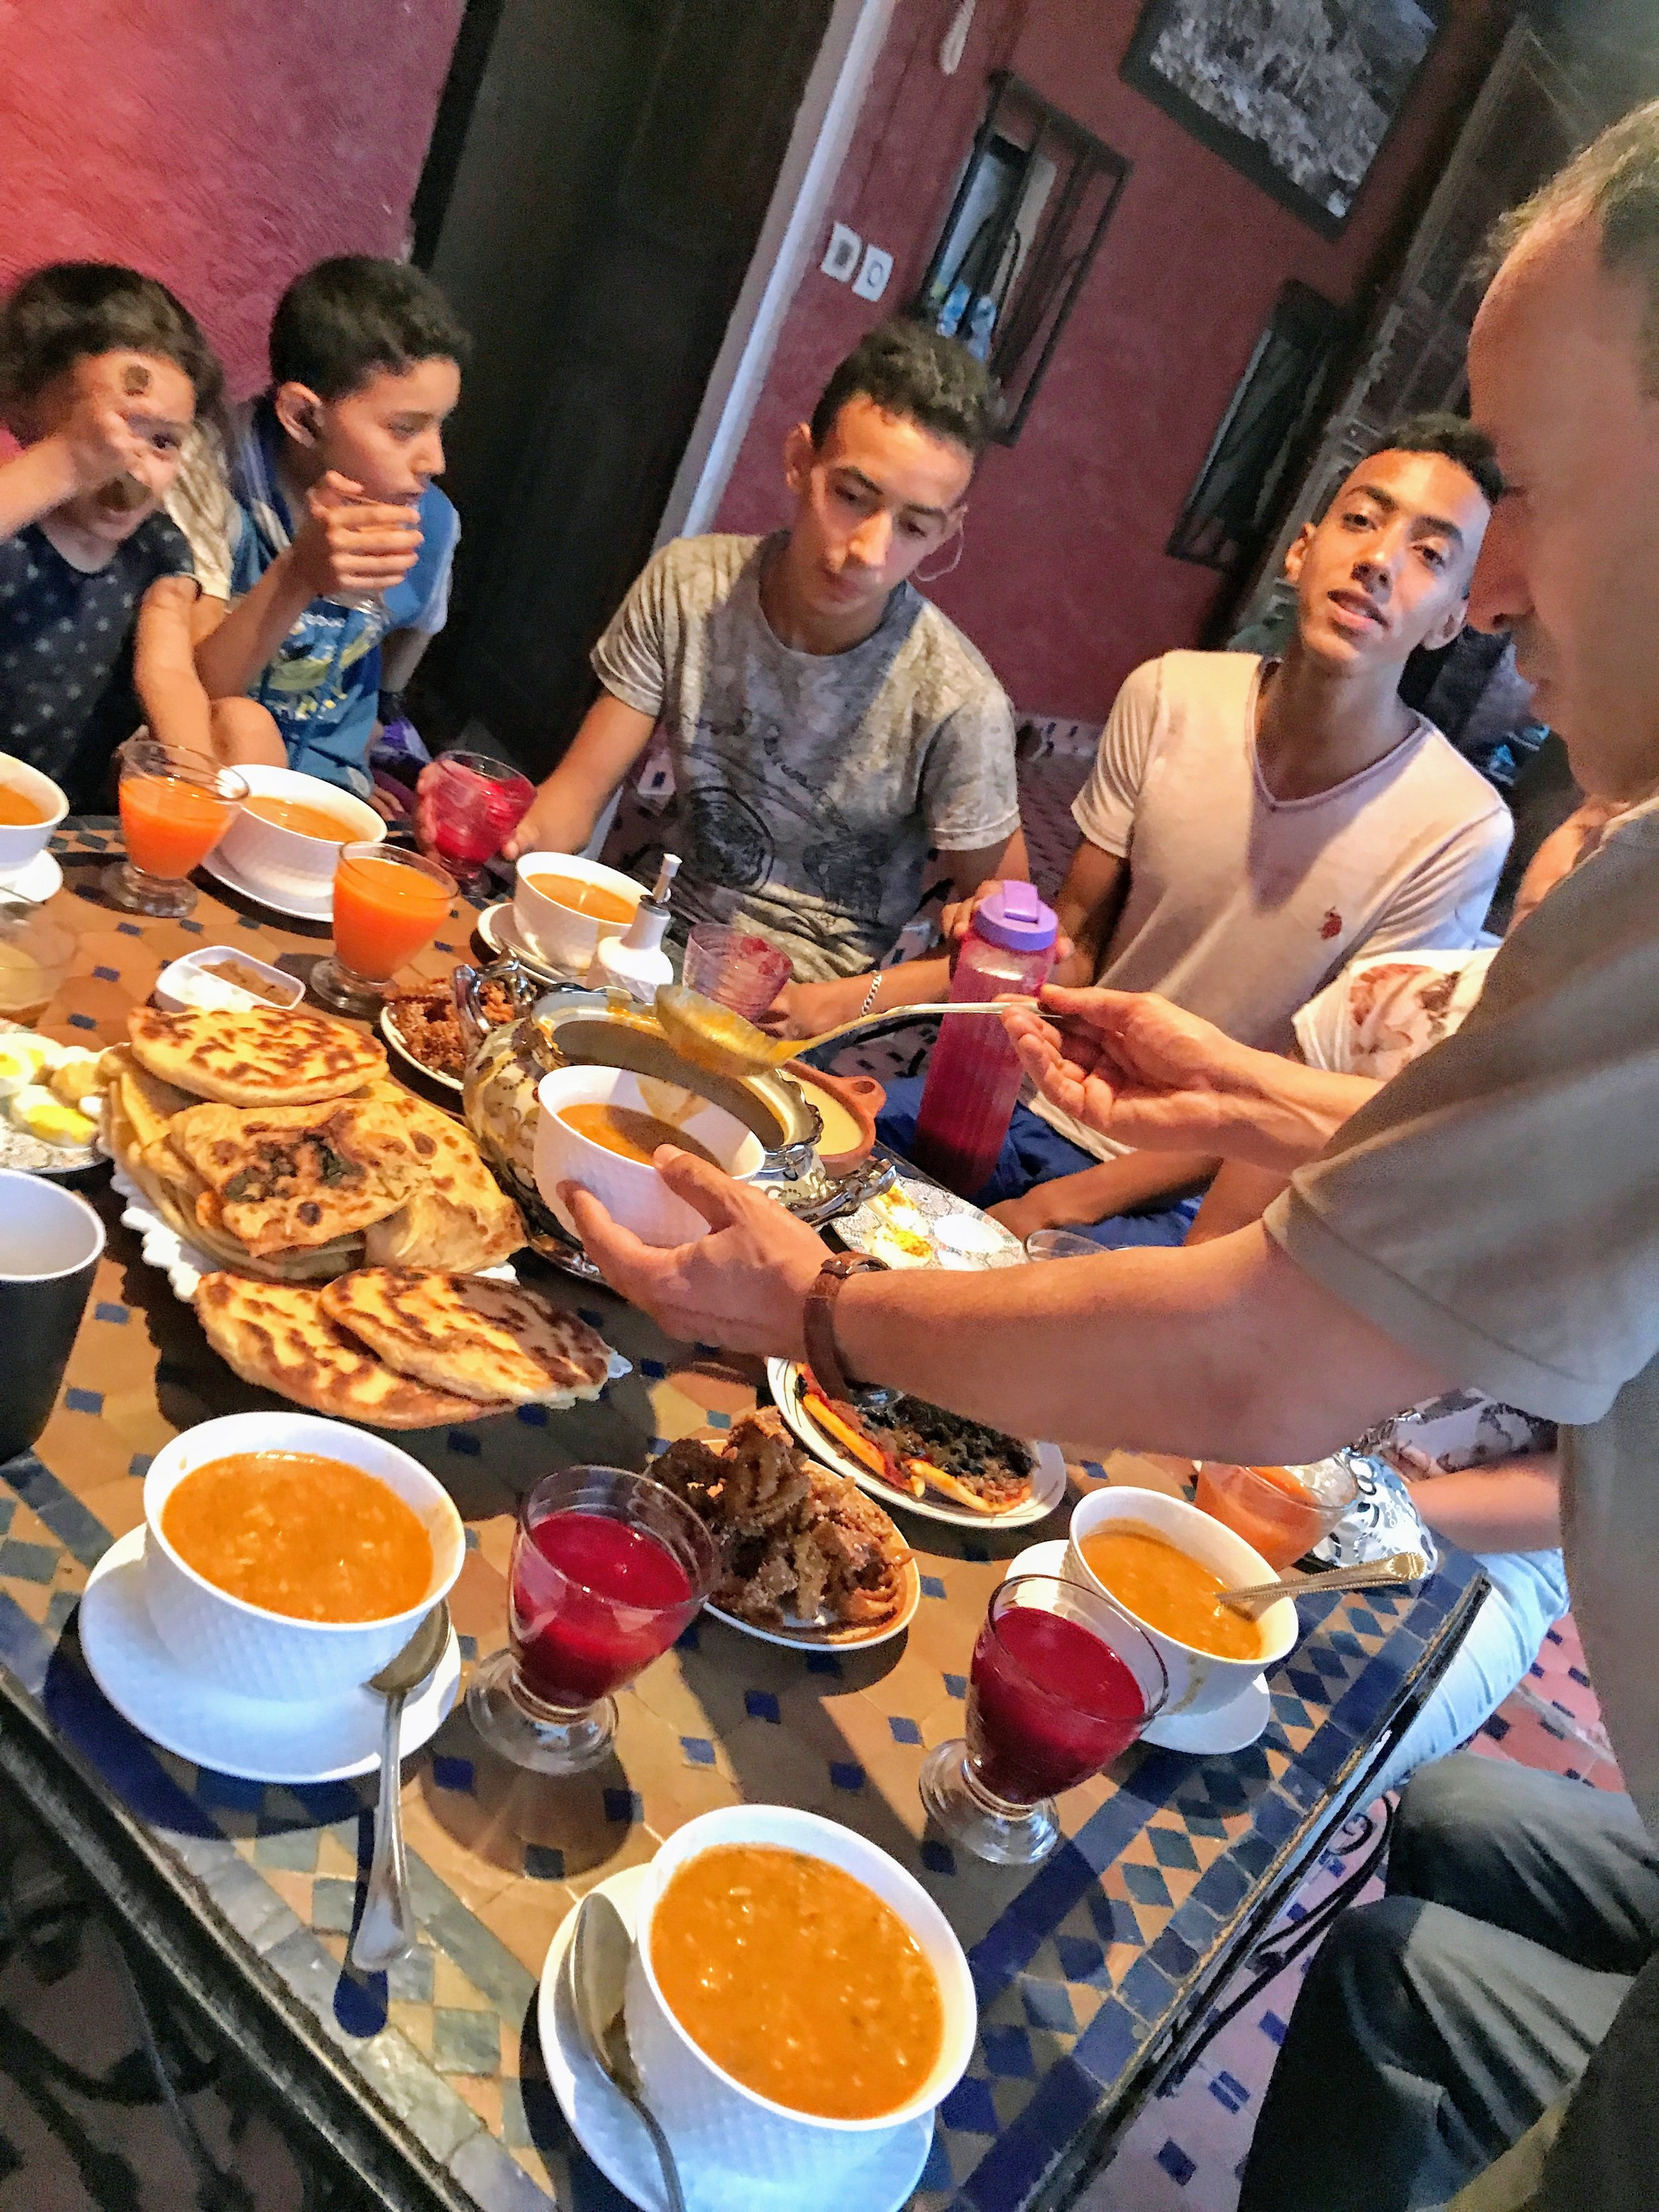 We're not Muslim, but we were invited by our host in Fez, Morocco,to join his family in breaking fast for Ramadan.